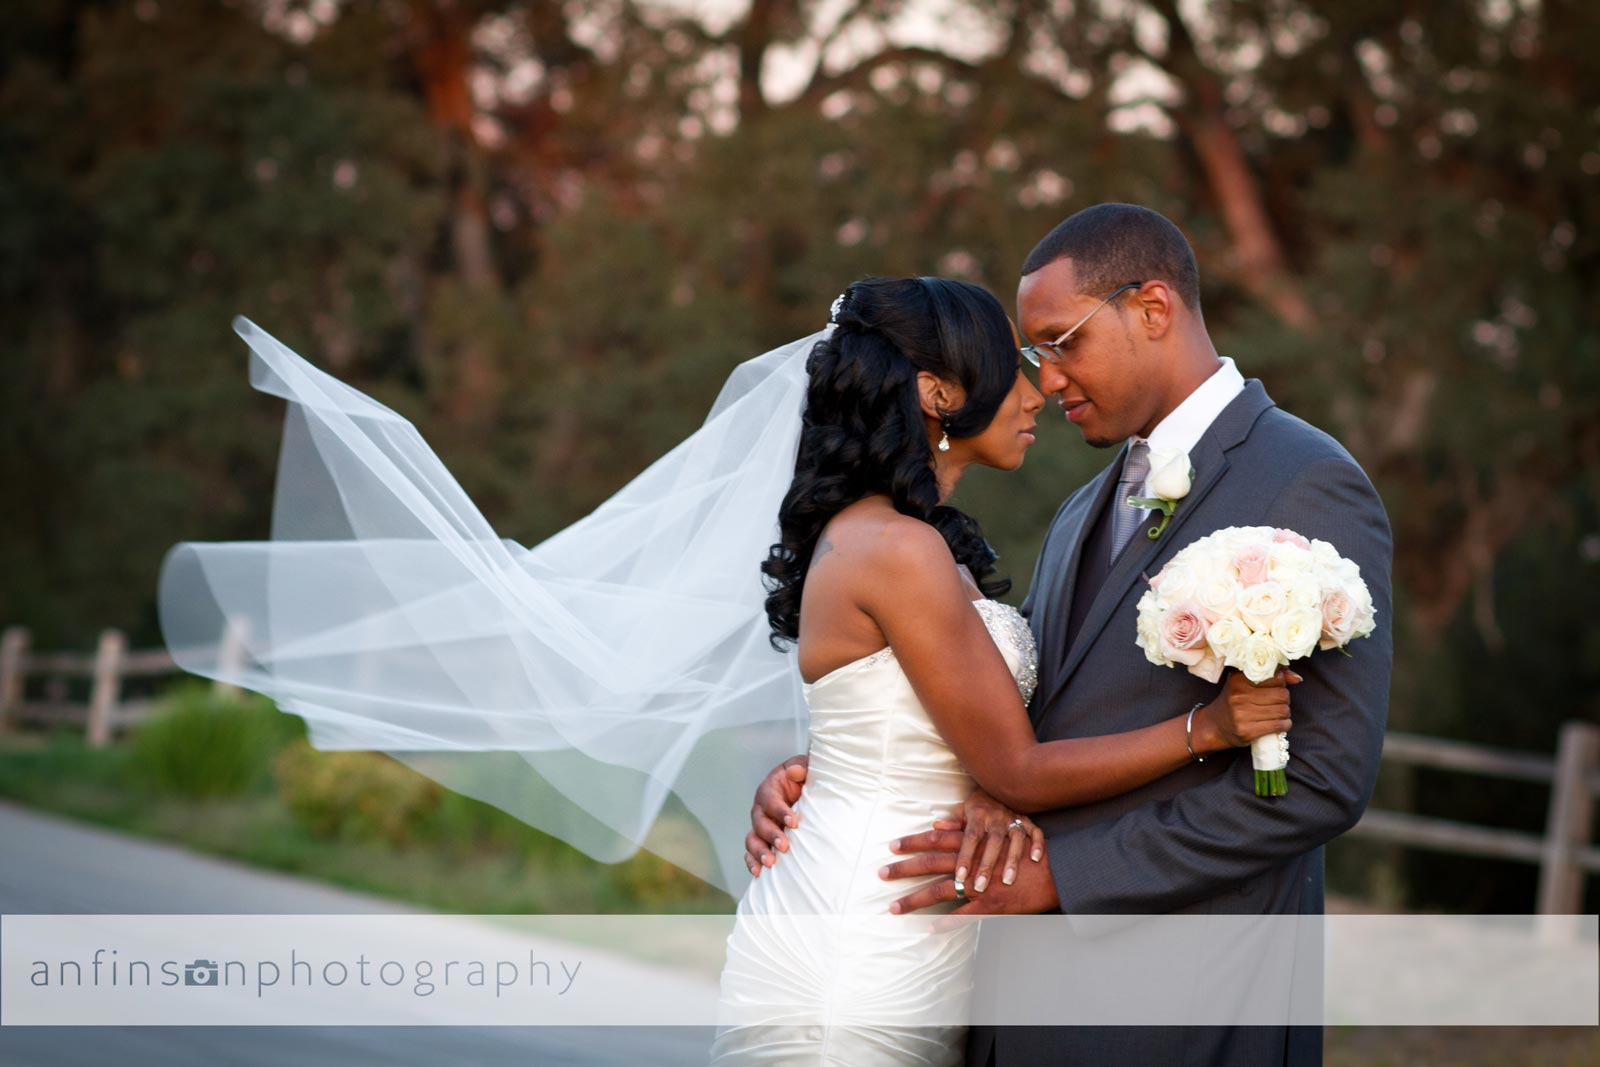 not in a relationship images african american